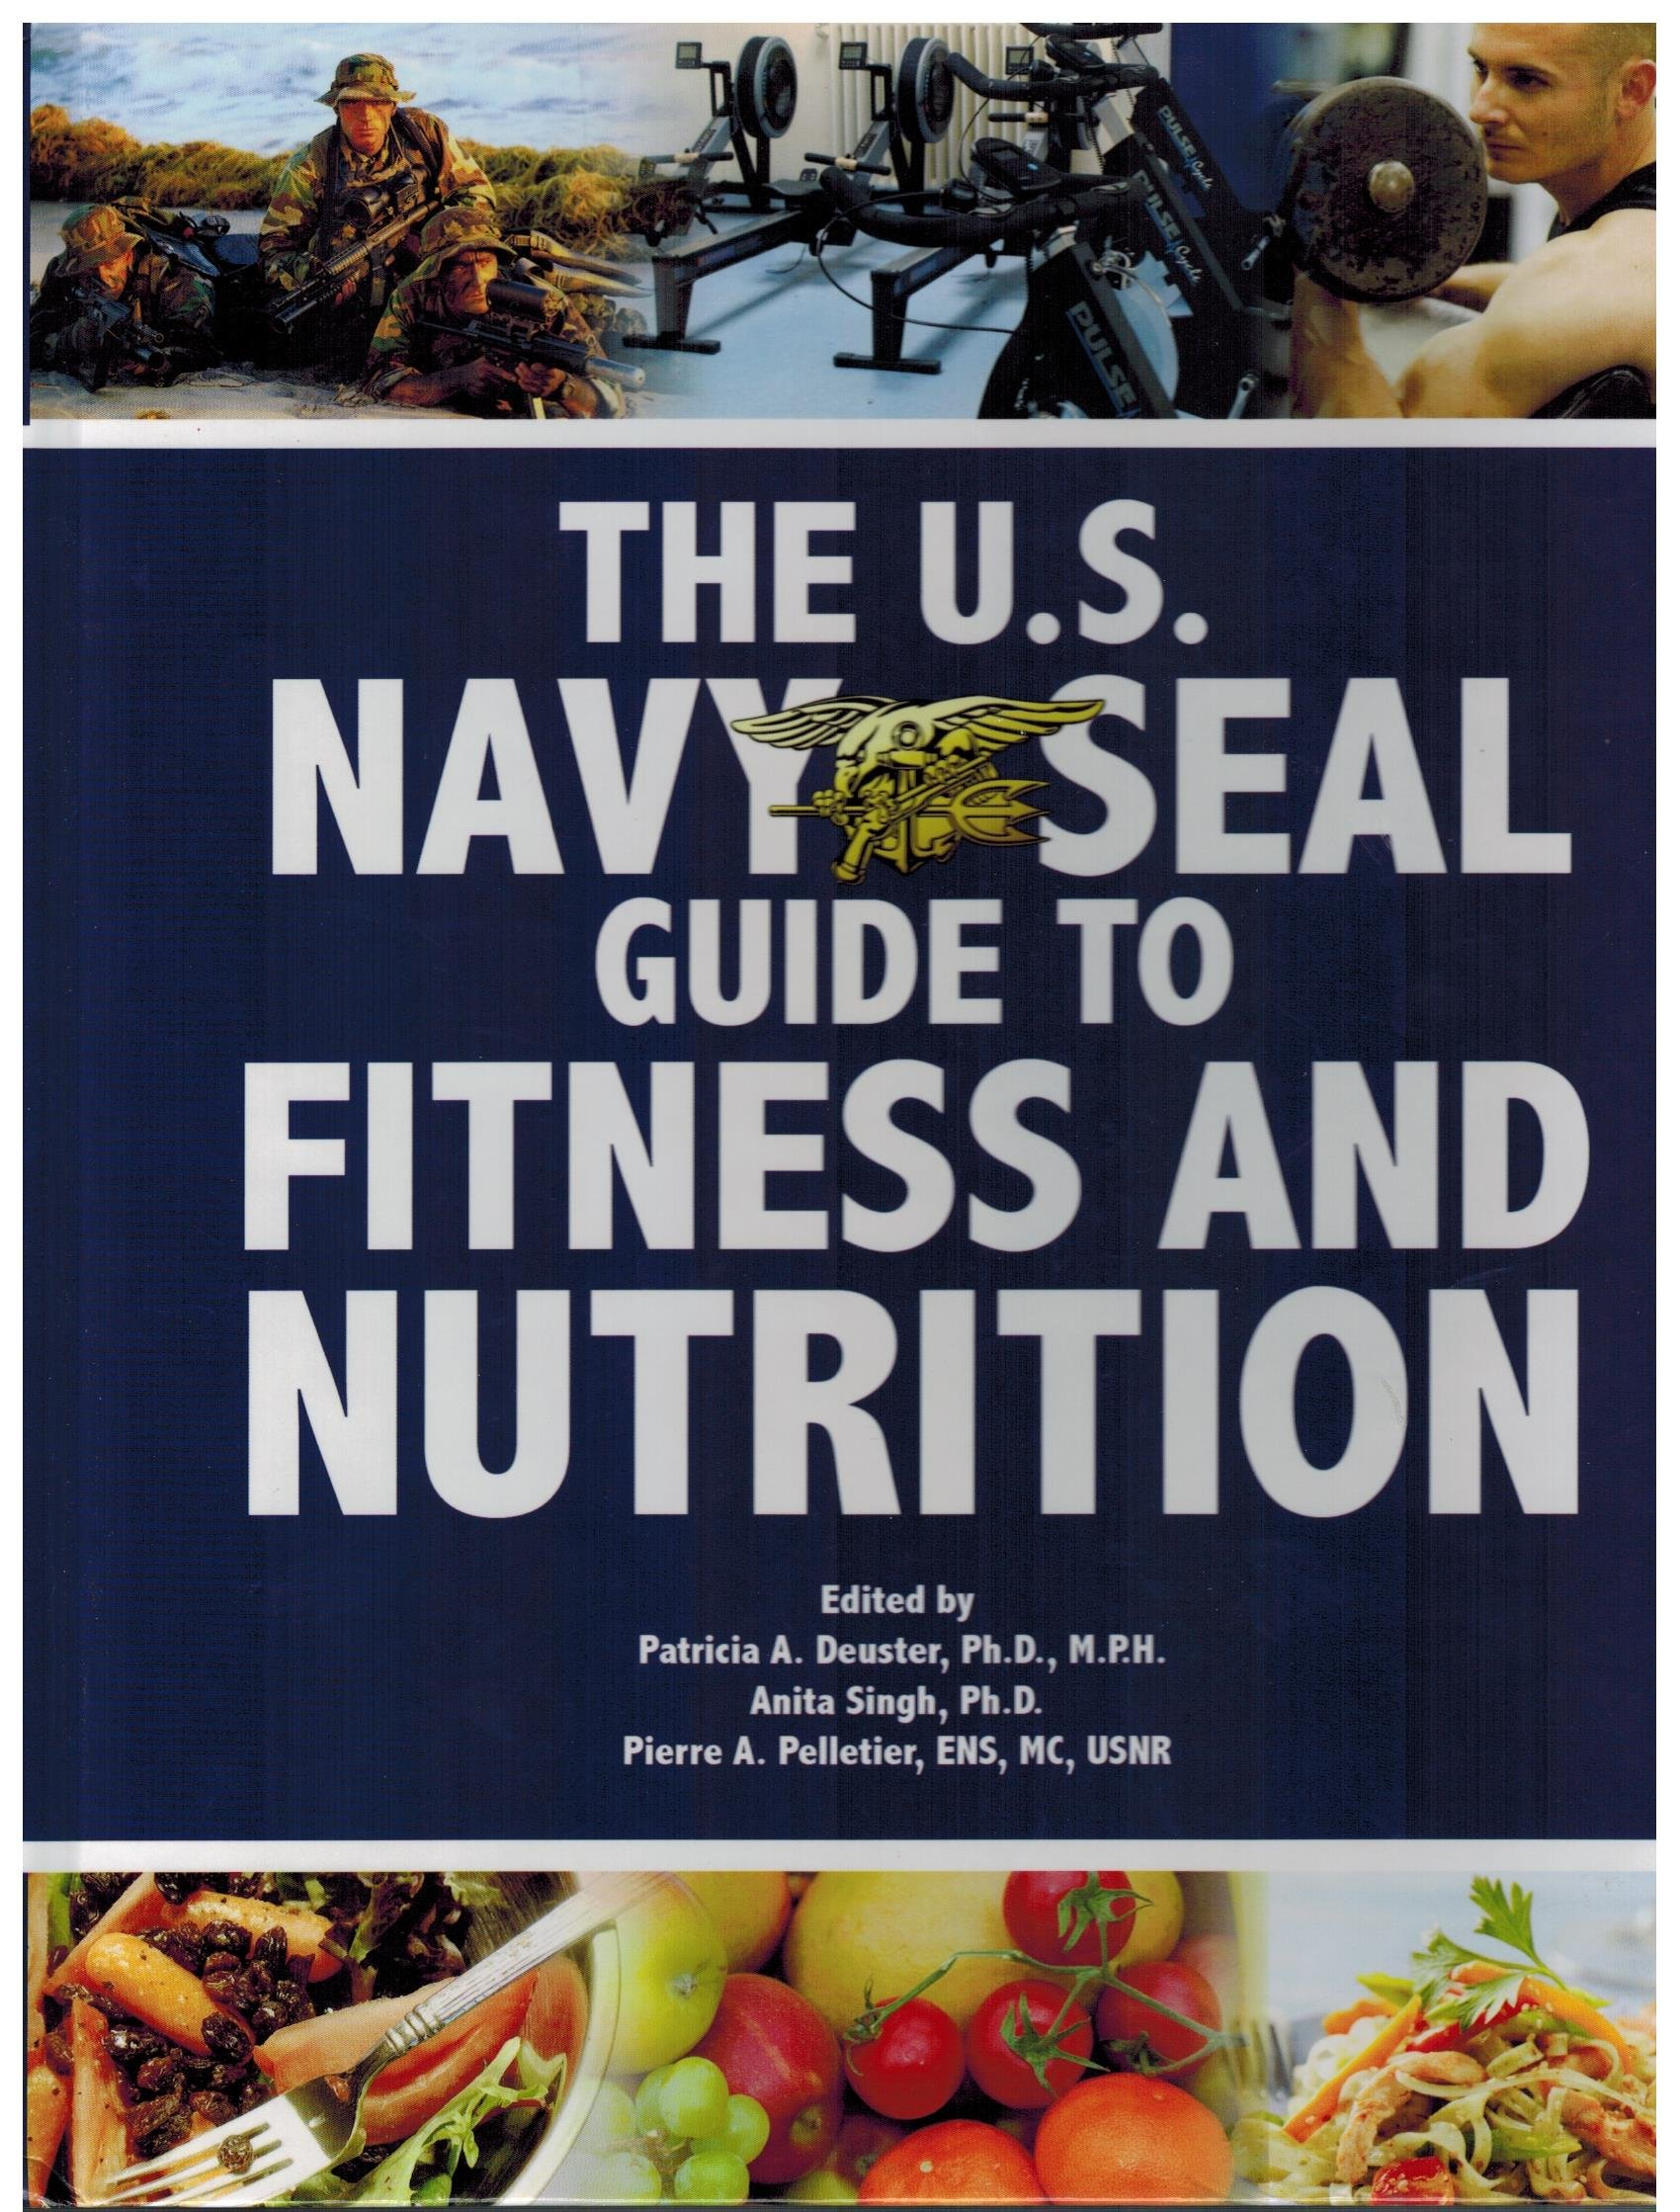 Download The U.S. Navy Seal Guide to Fitness and Nutrition ebook